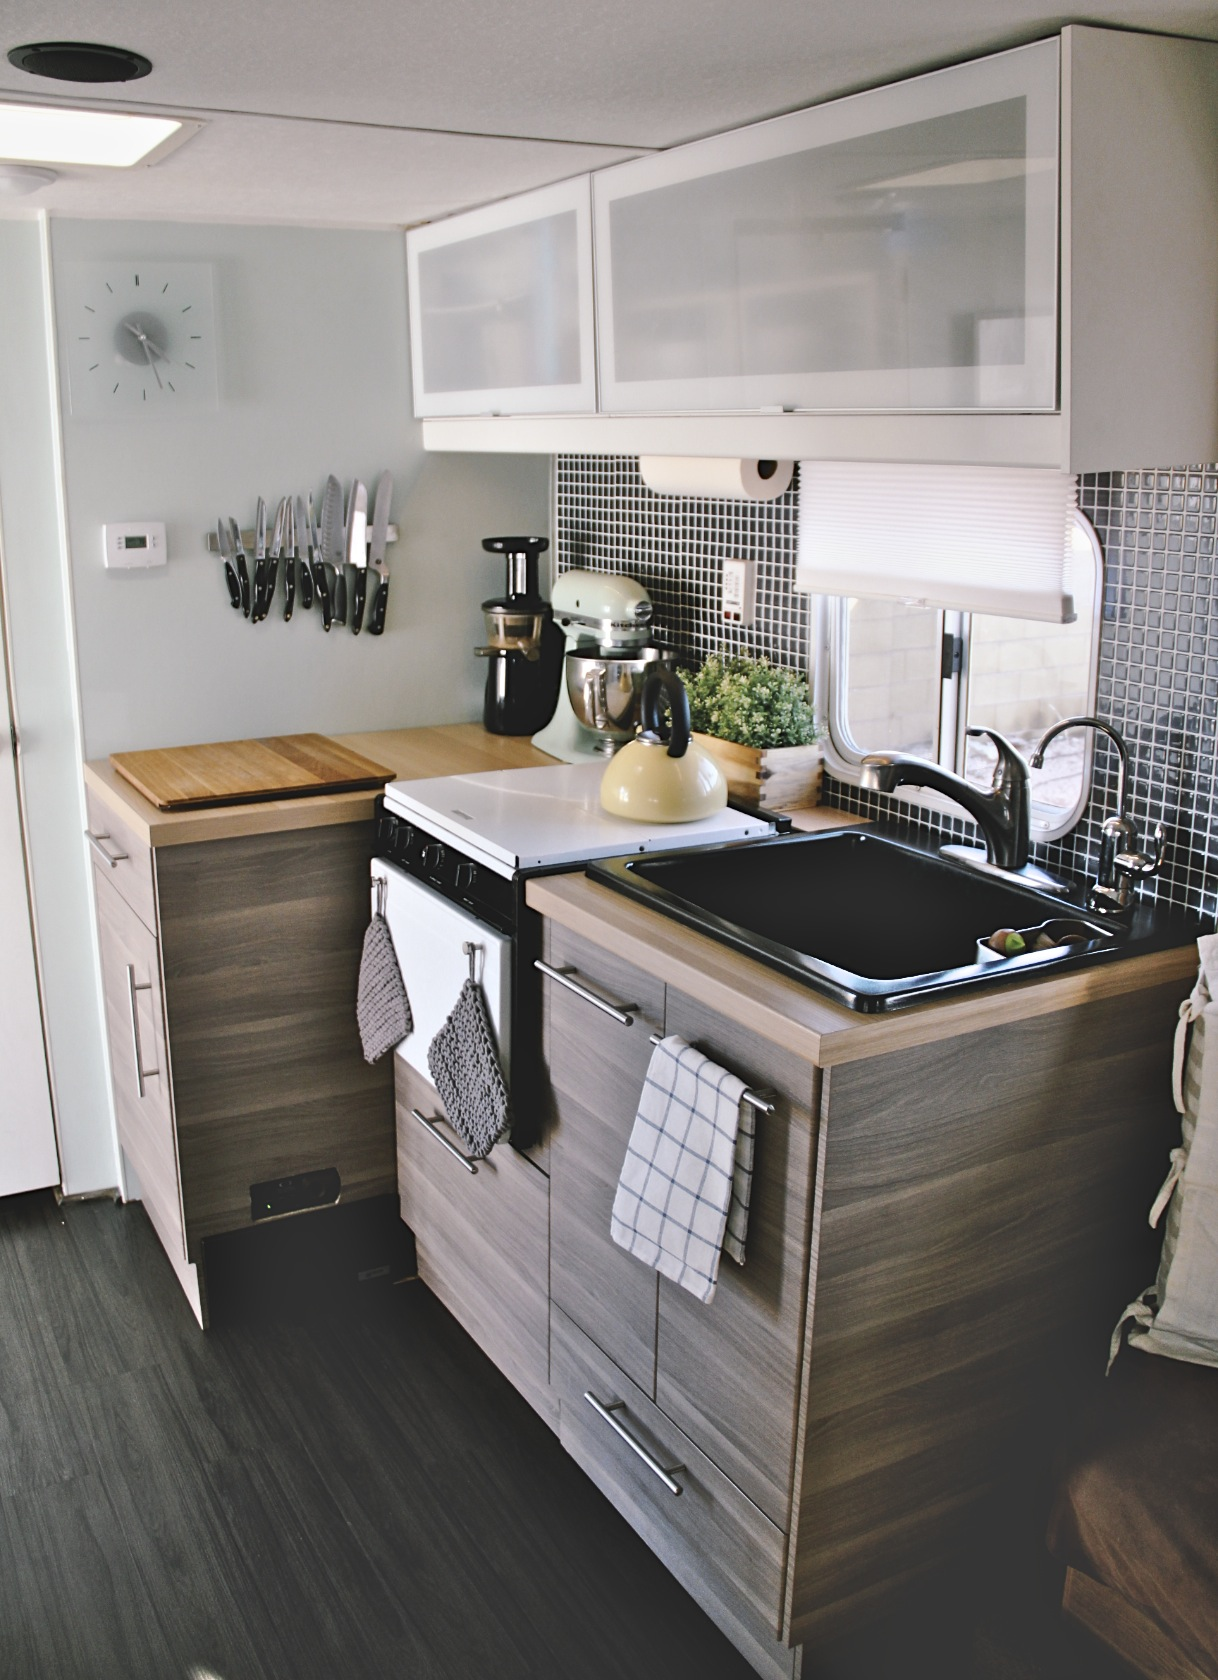 Small Space Solutions From Campers Trailers Apartment